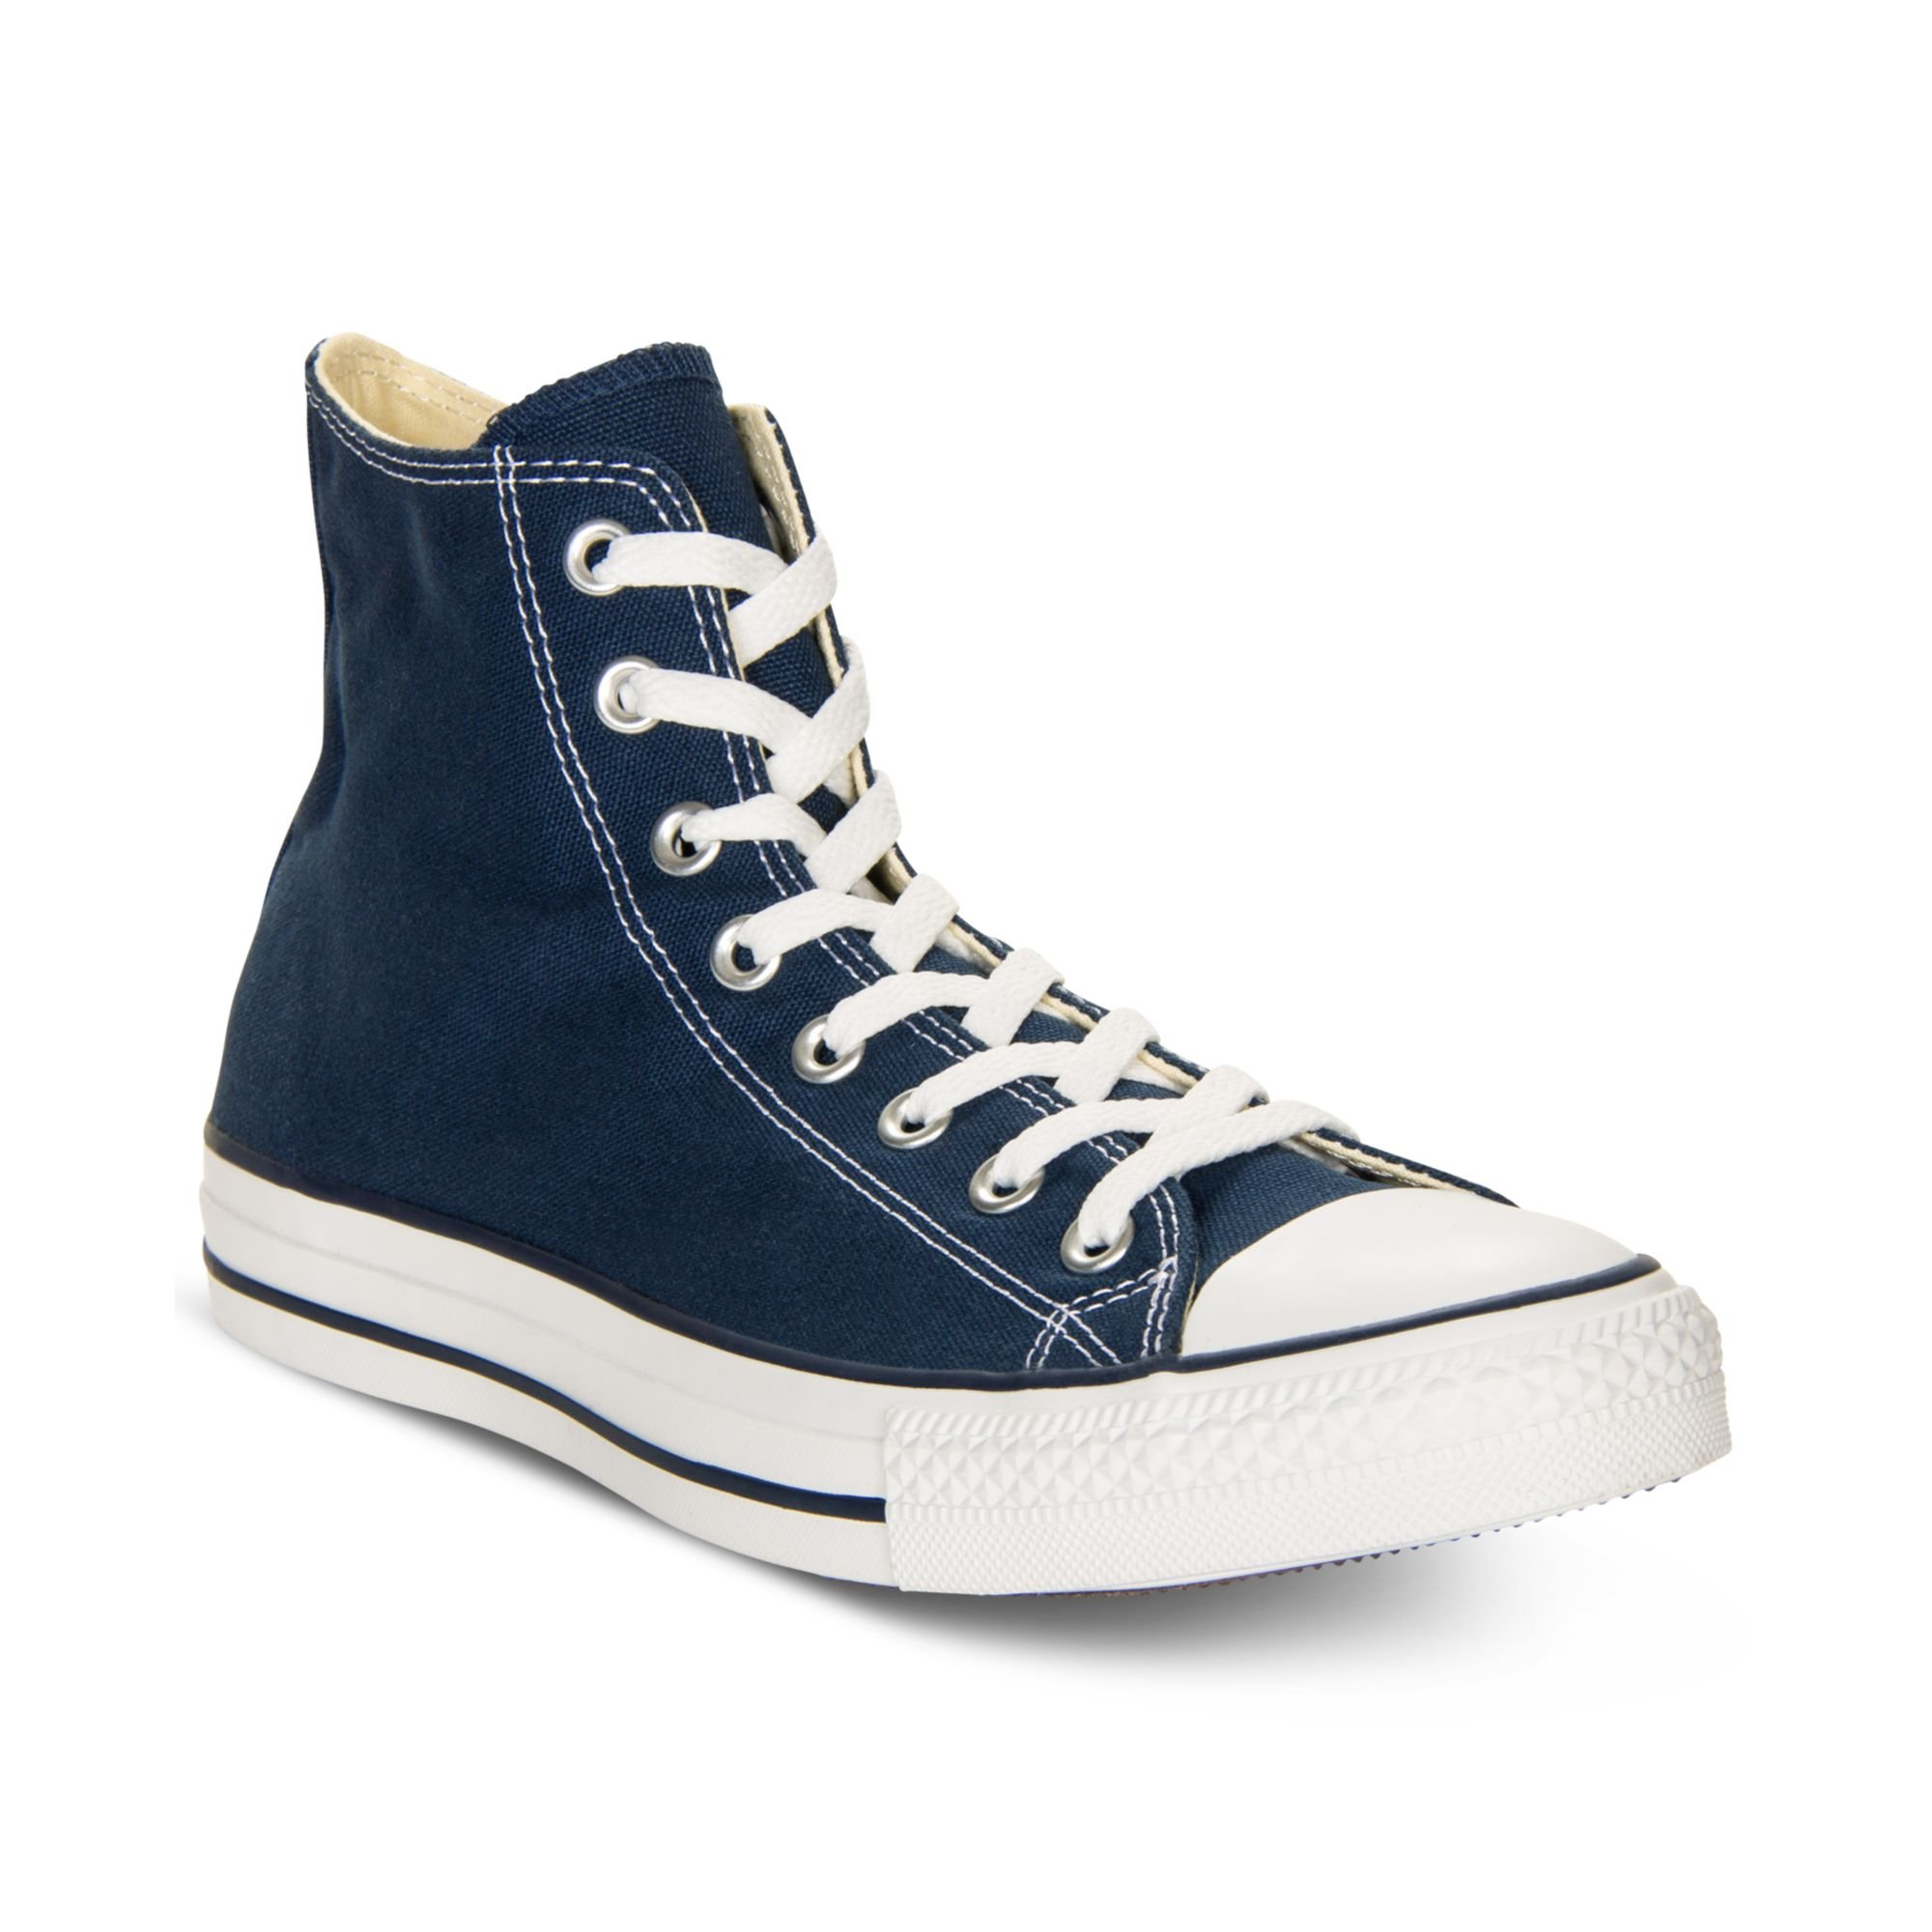 converse hindu single men Converse cons el distrito sneakers for men 39 ☆ (7)  converse star player  ii sneakers for men 36 ☆ (5)  converse one star ox sneakers for men.